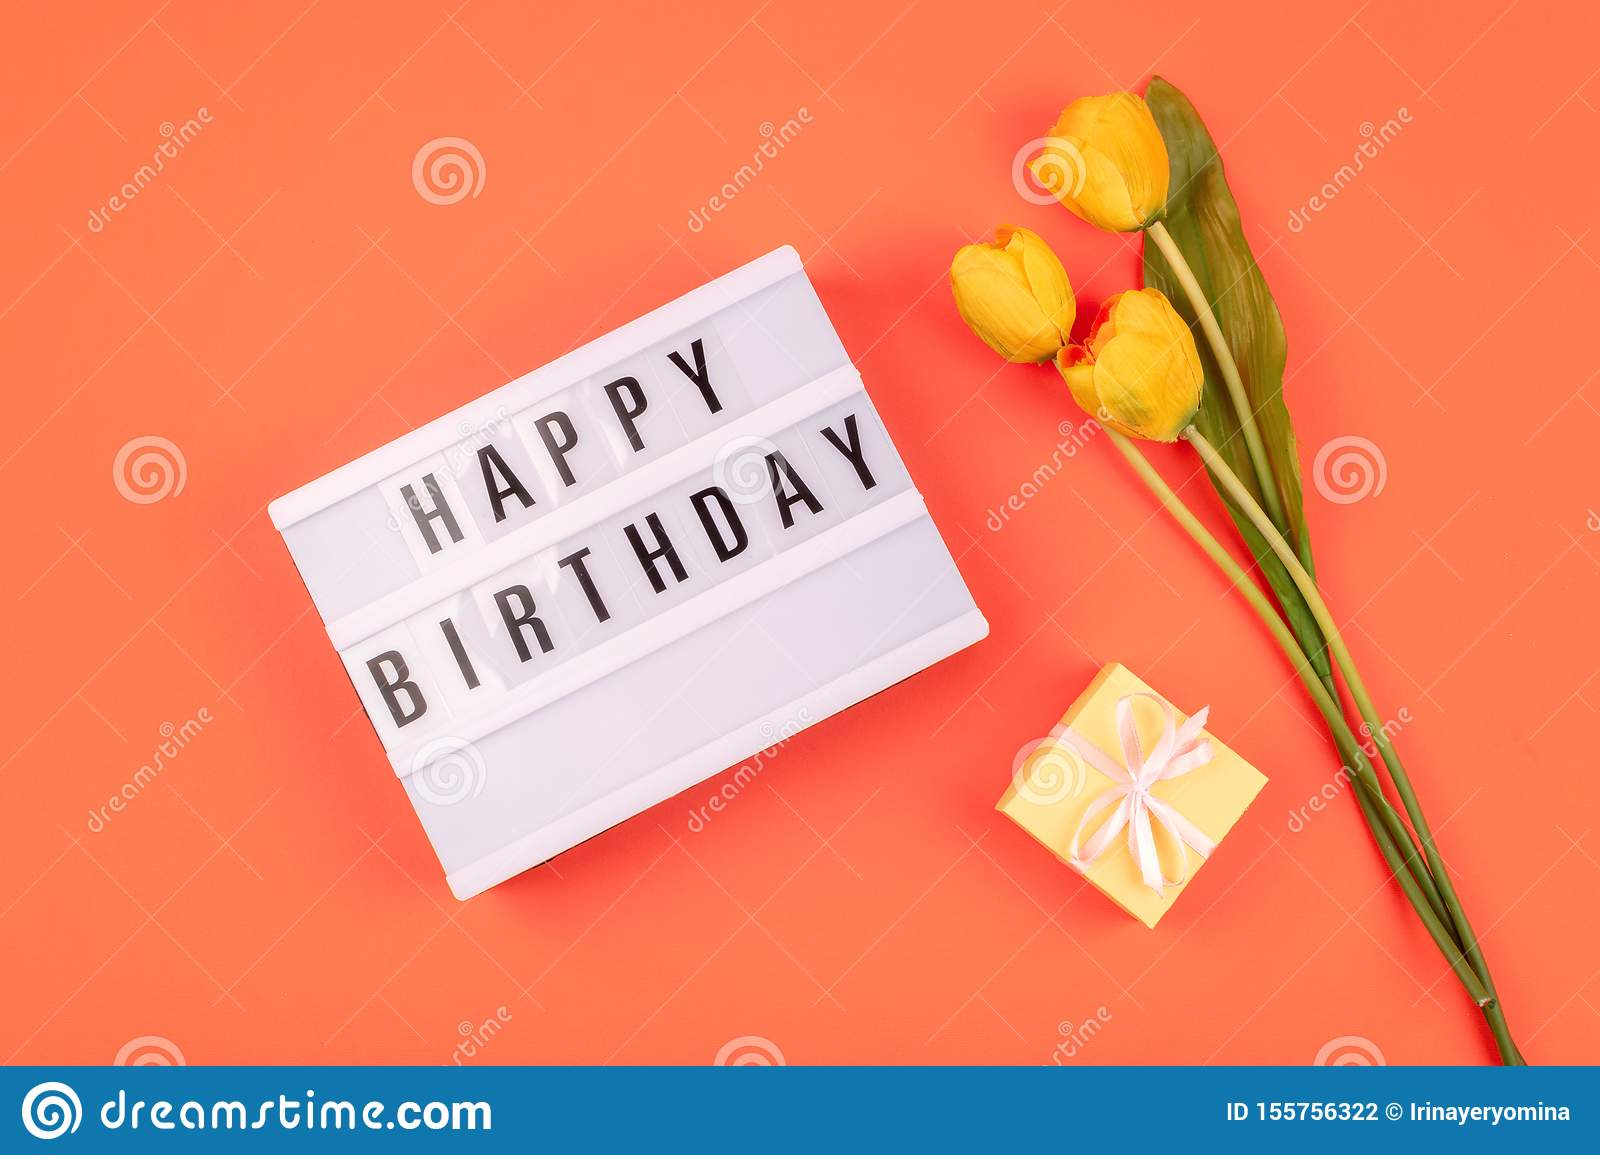 Celebration Happy birthday gift flat lay background. Light box with text Happy birthday and bouquet of yellow tulips on coral